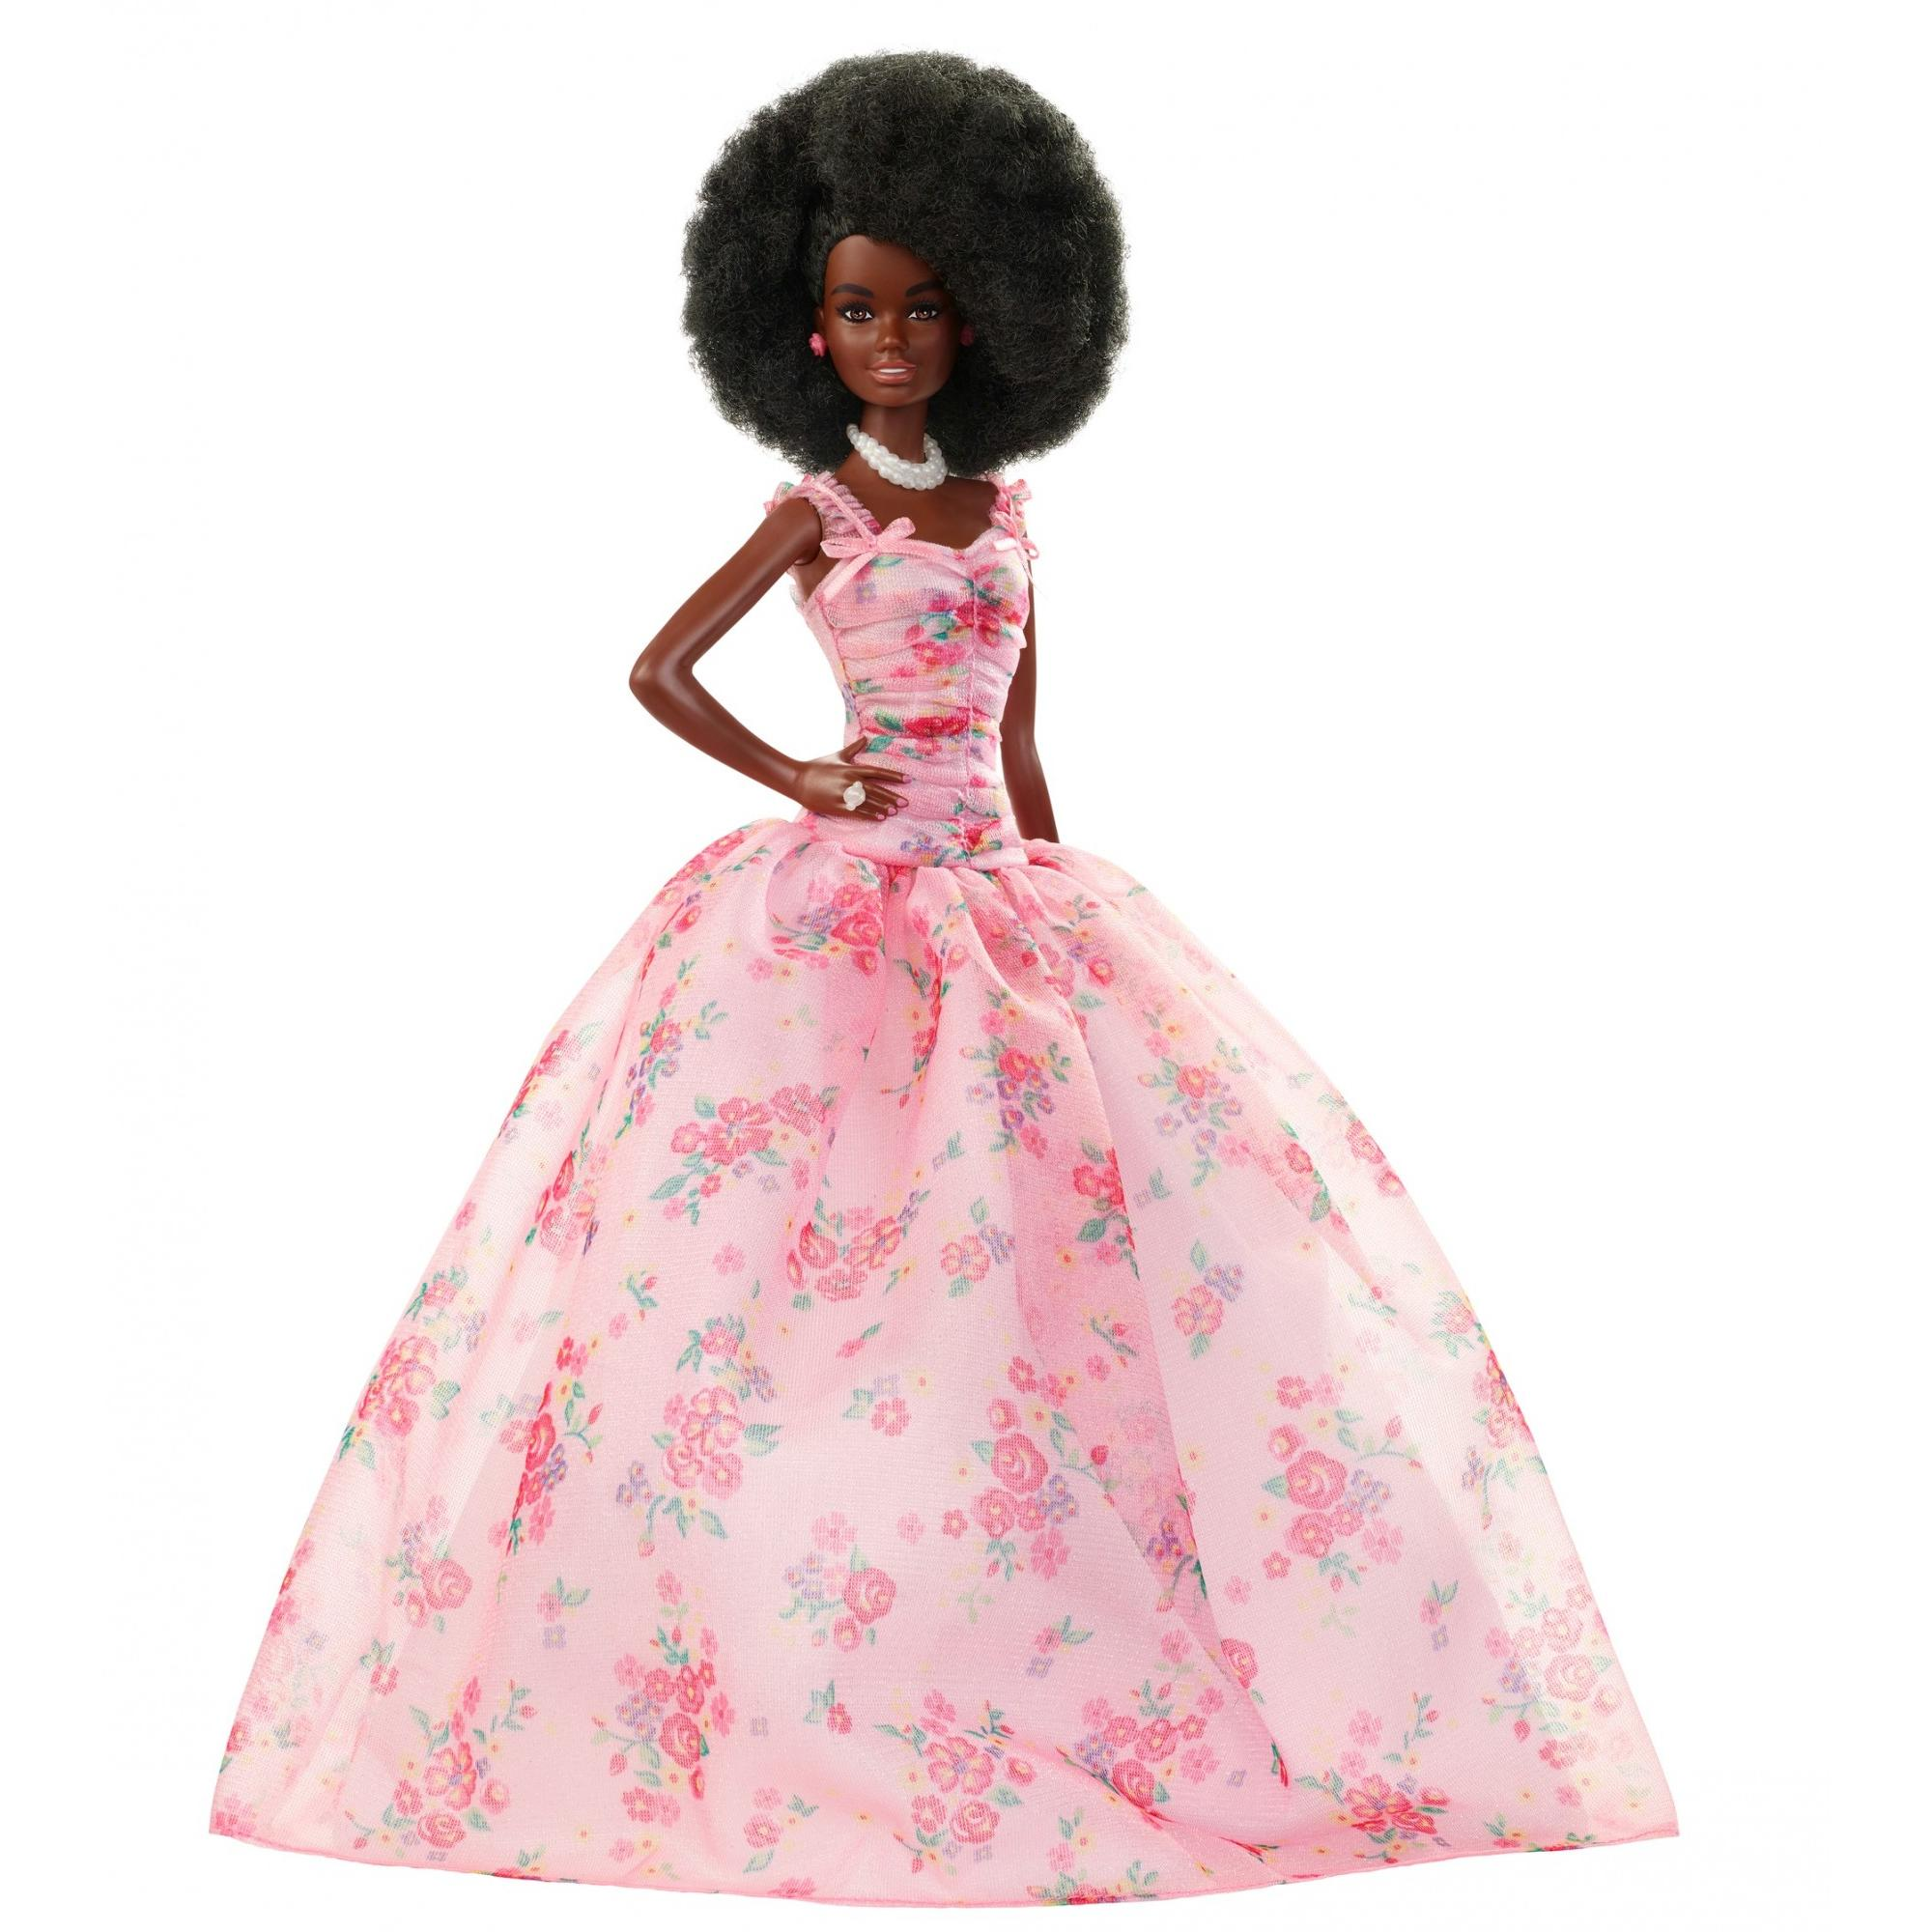 Barbie Birthday Wishes Doll with Pull Back Hairstyle & Pink Gown